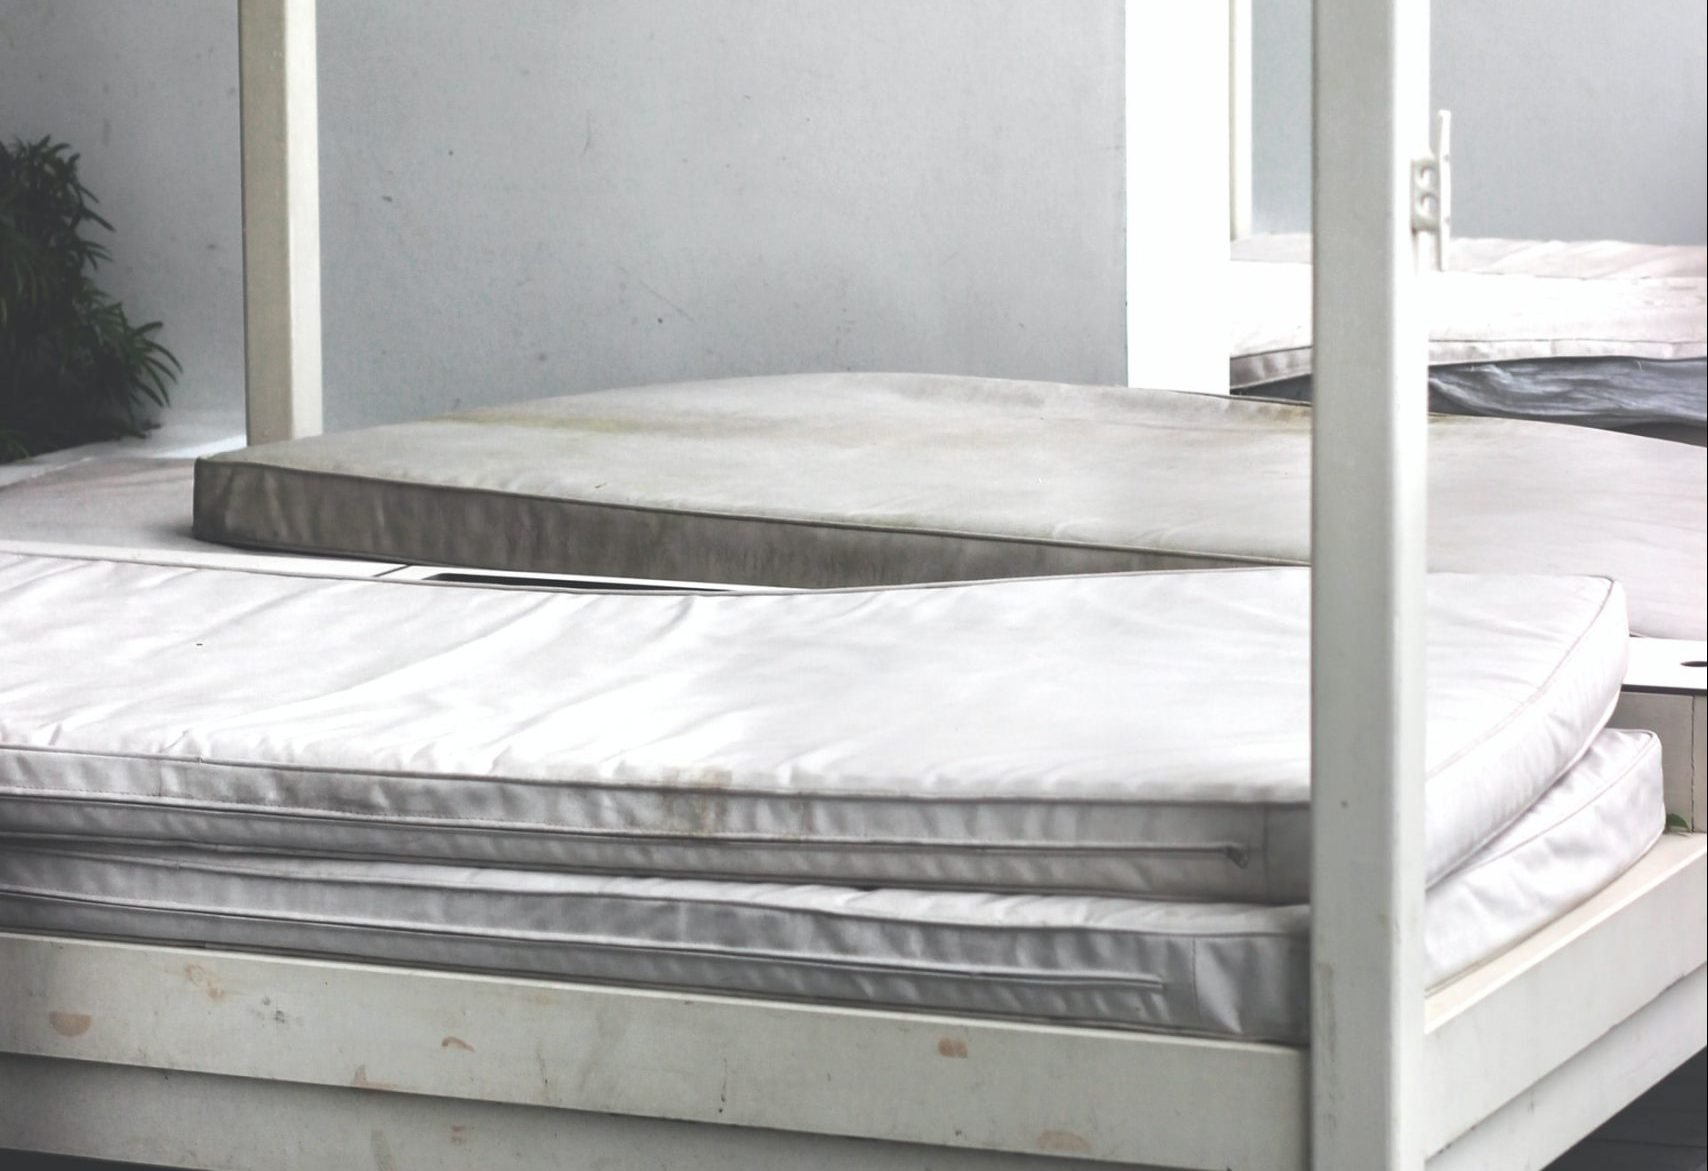 mattresses on bed